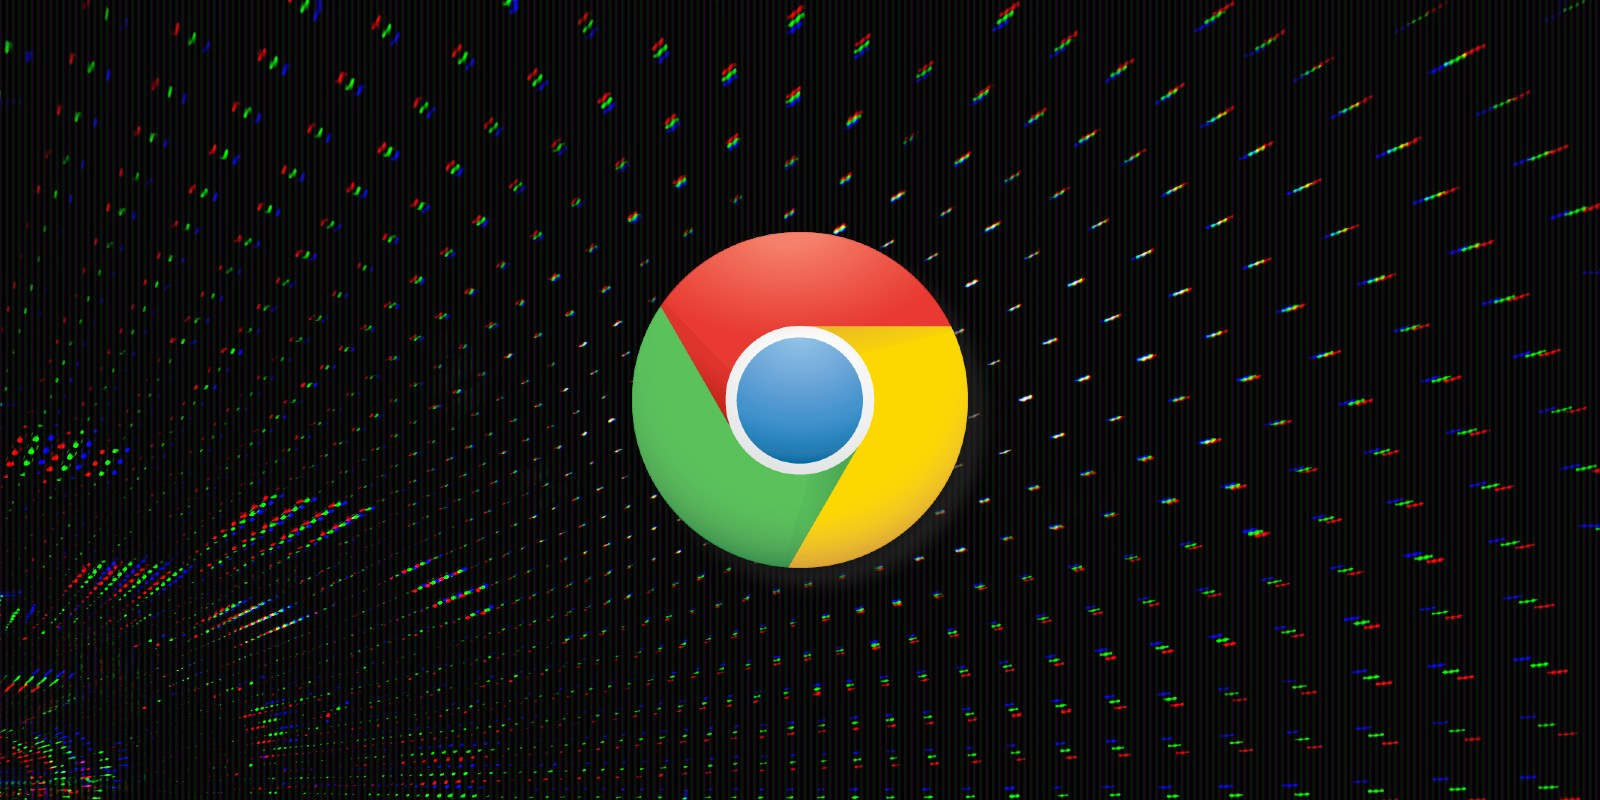 Google Chrome, Microsoft Edge zero-day vulnerability shared on Twitter